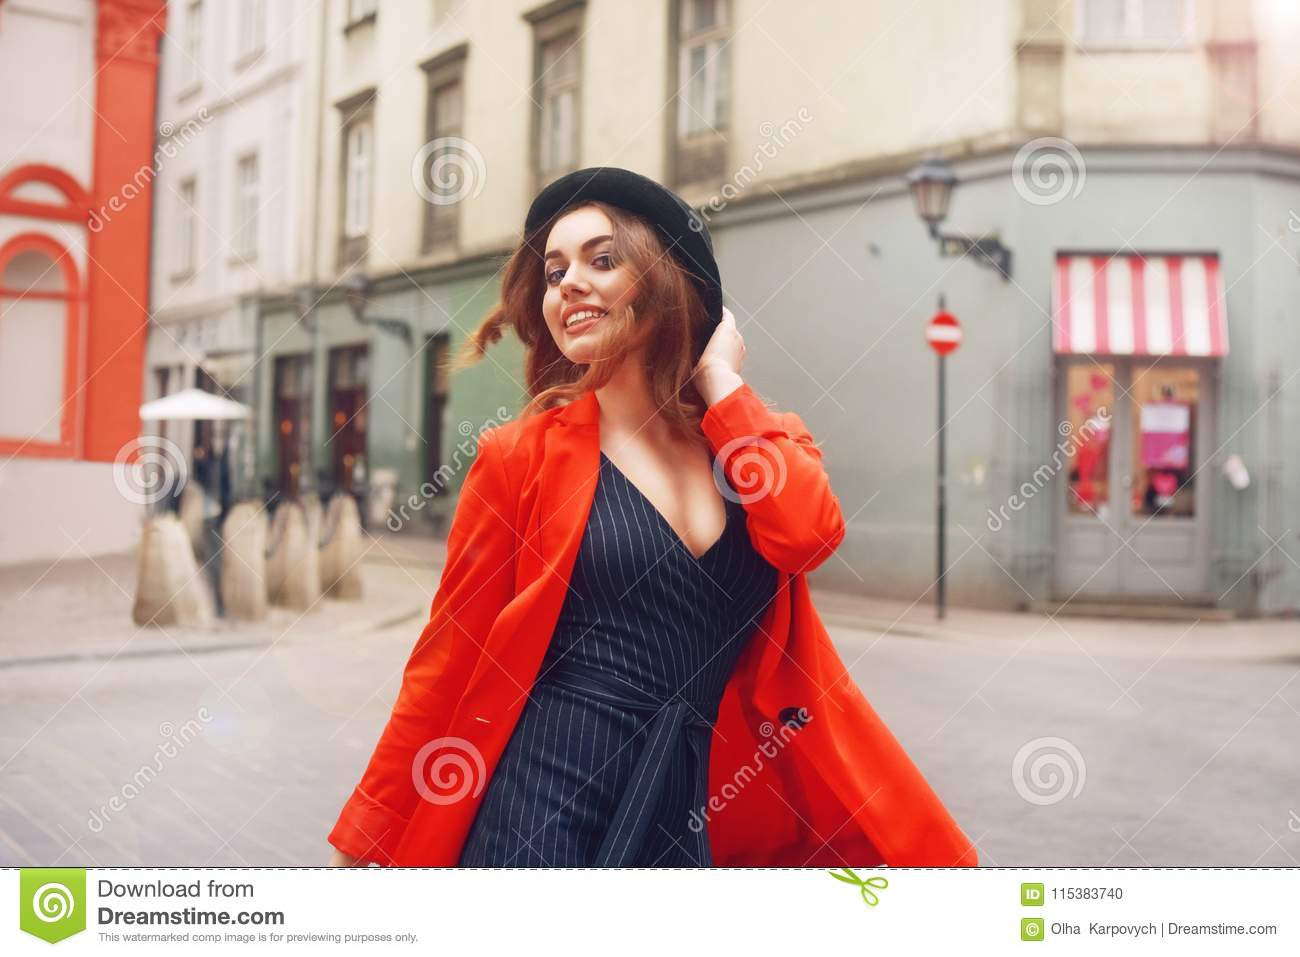 63e0eb846c64 Stylish Hipster Girl Posing In Front Of The Old Street In City ...